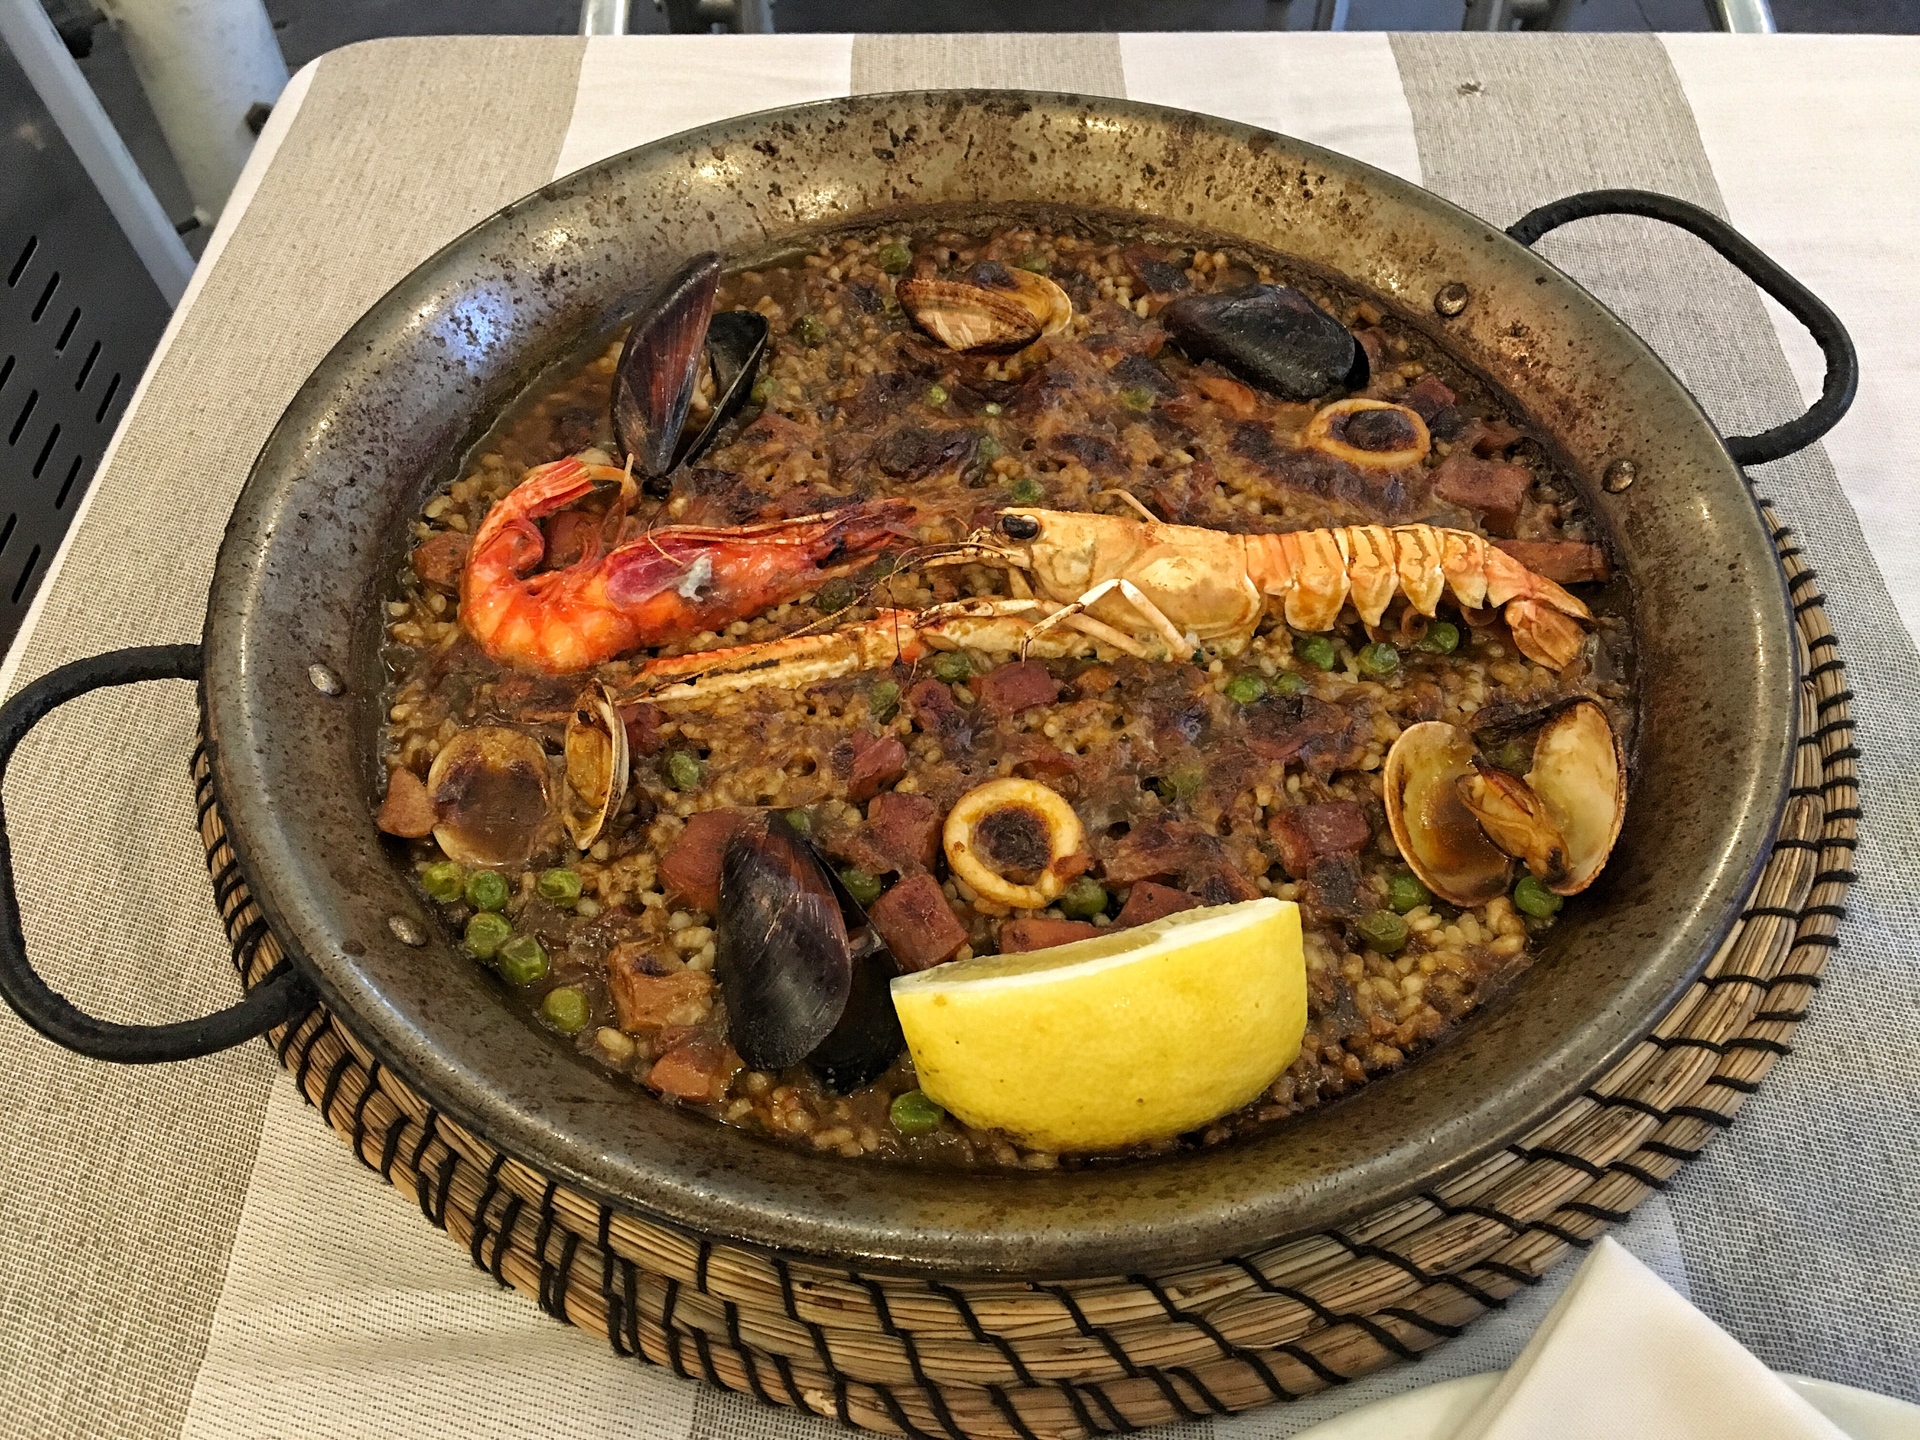 Paella at its finest.